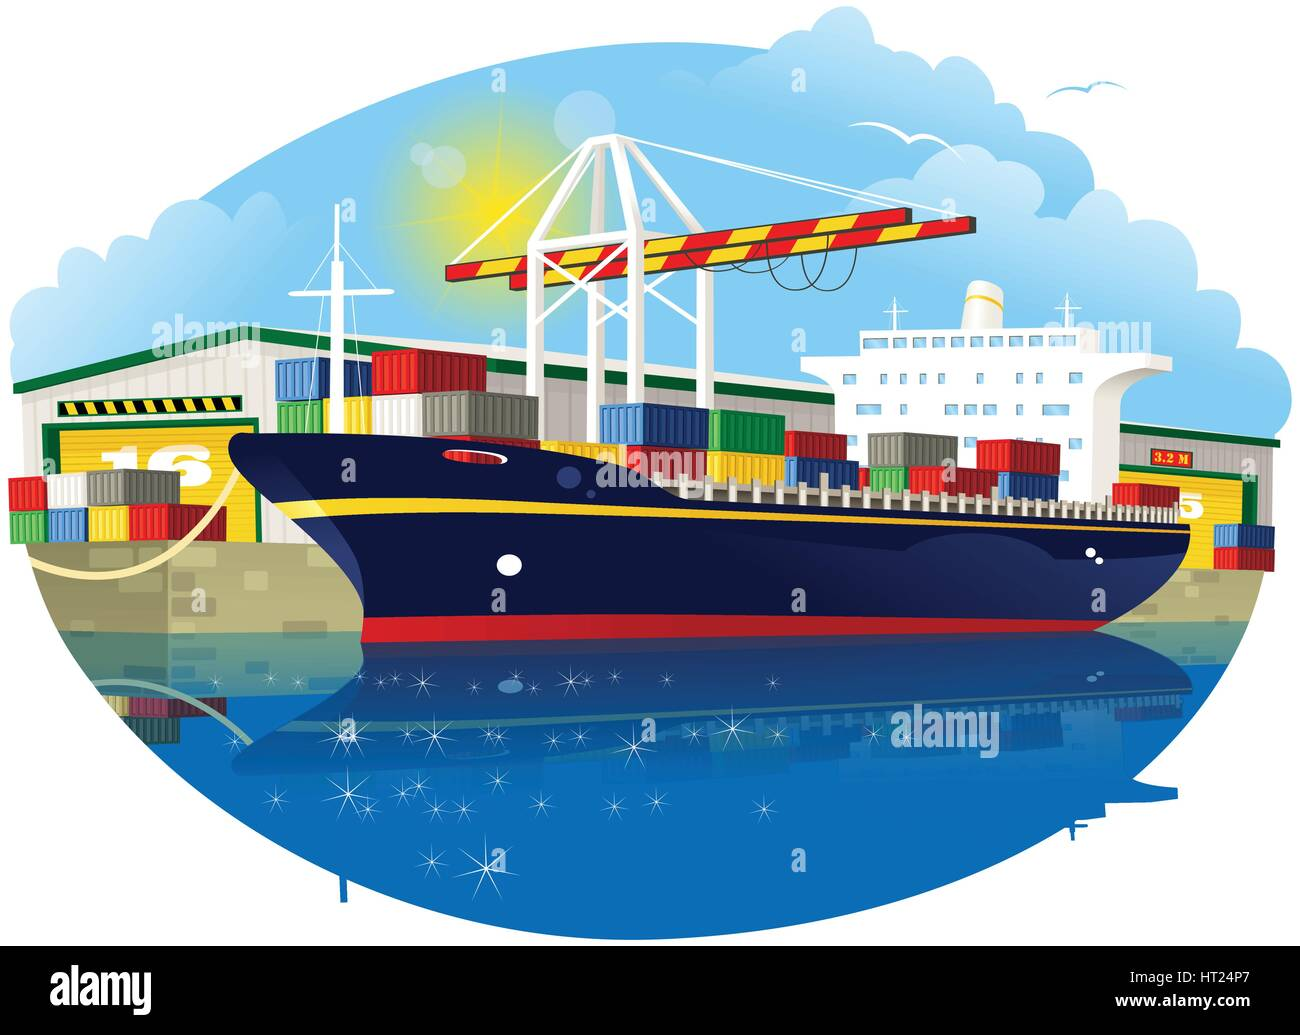 An illustration of a typical small container ship docked at the quayside while being loaded up by crane. - Stock Vector